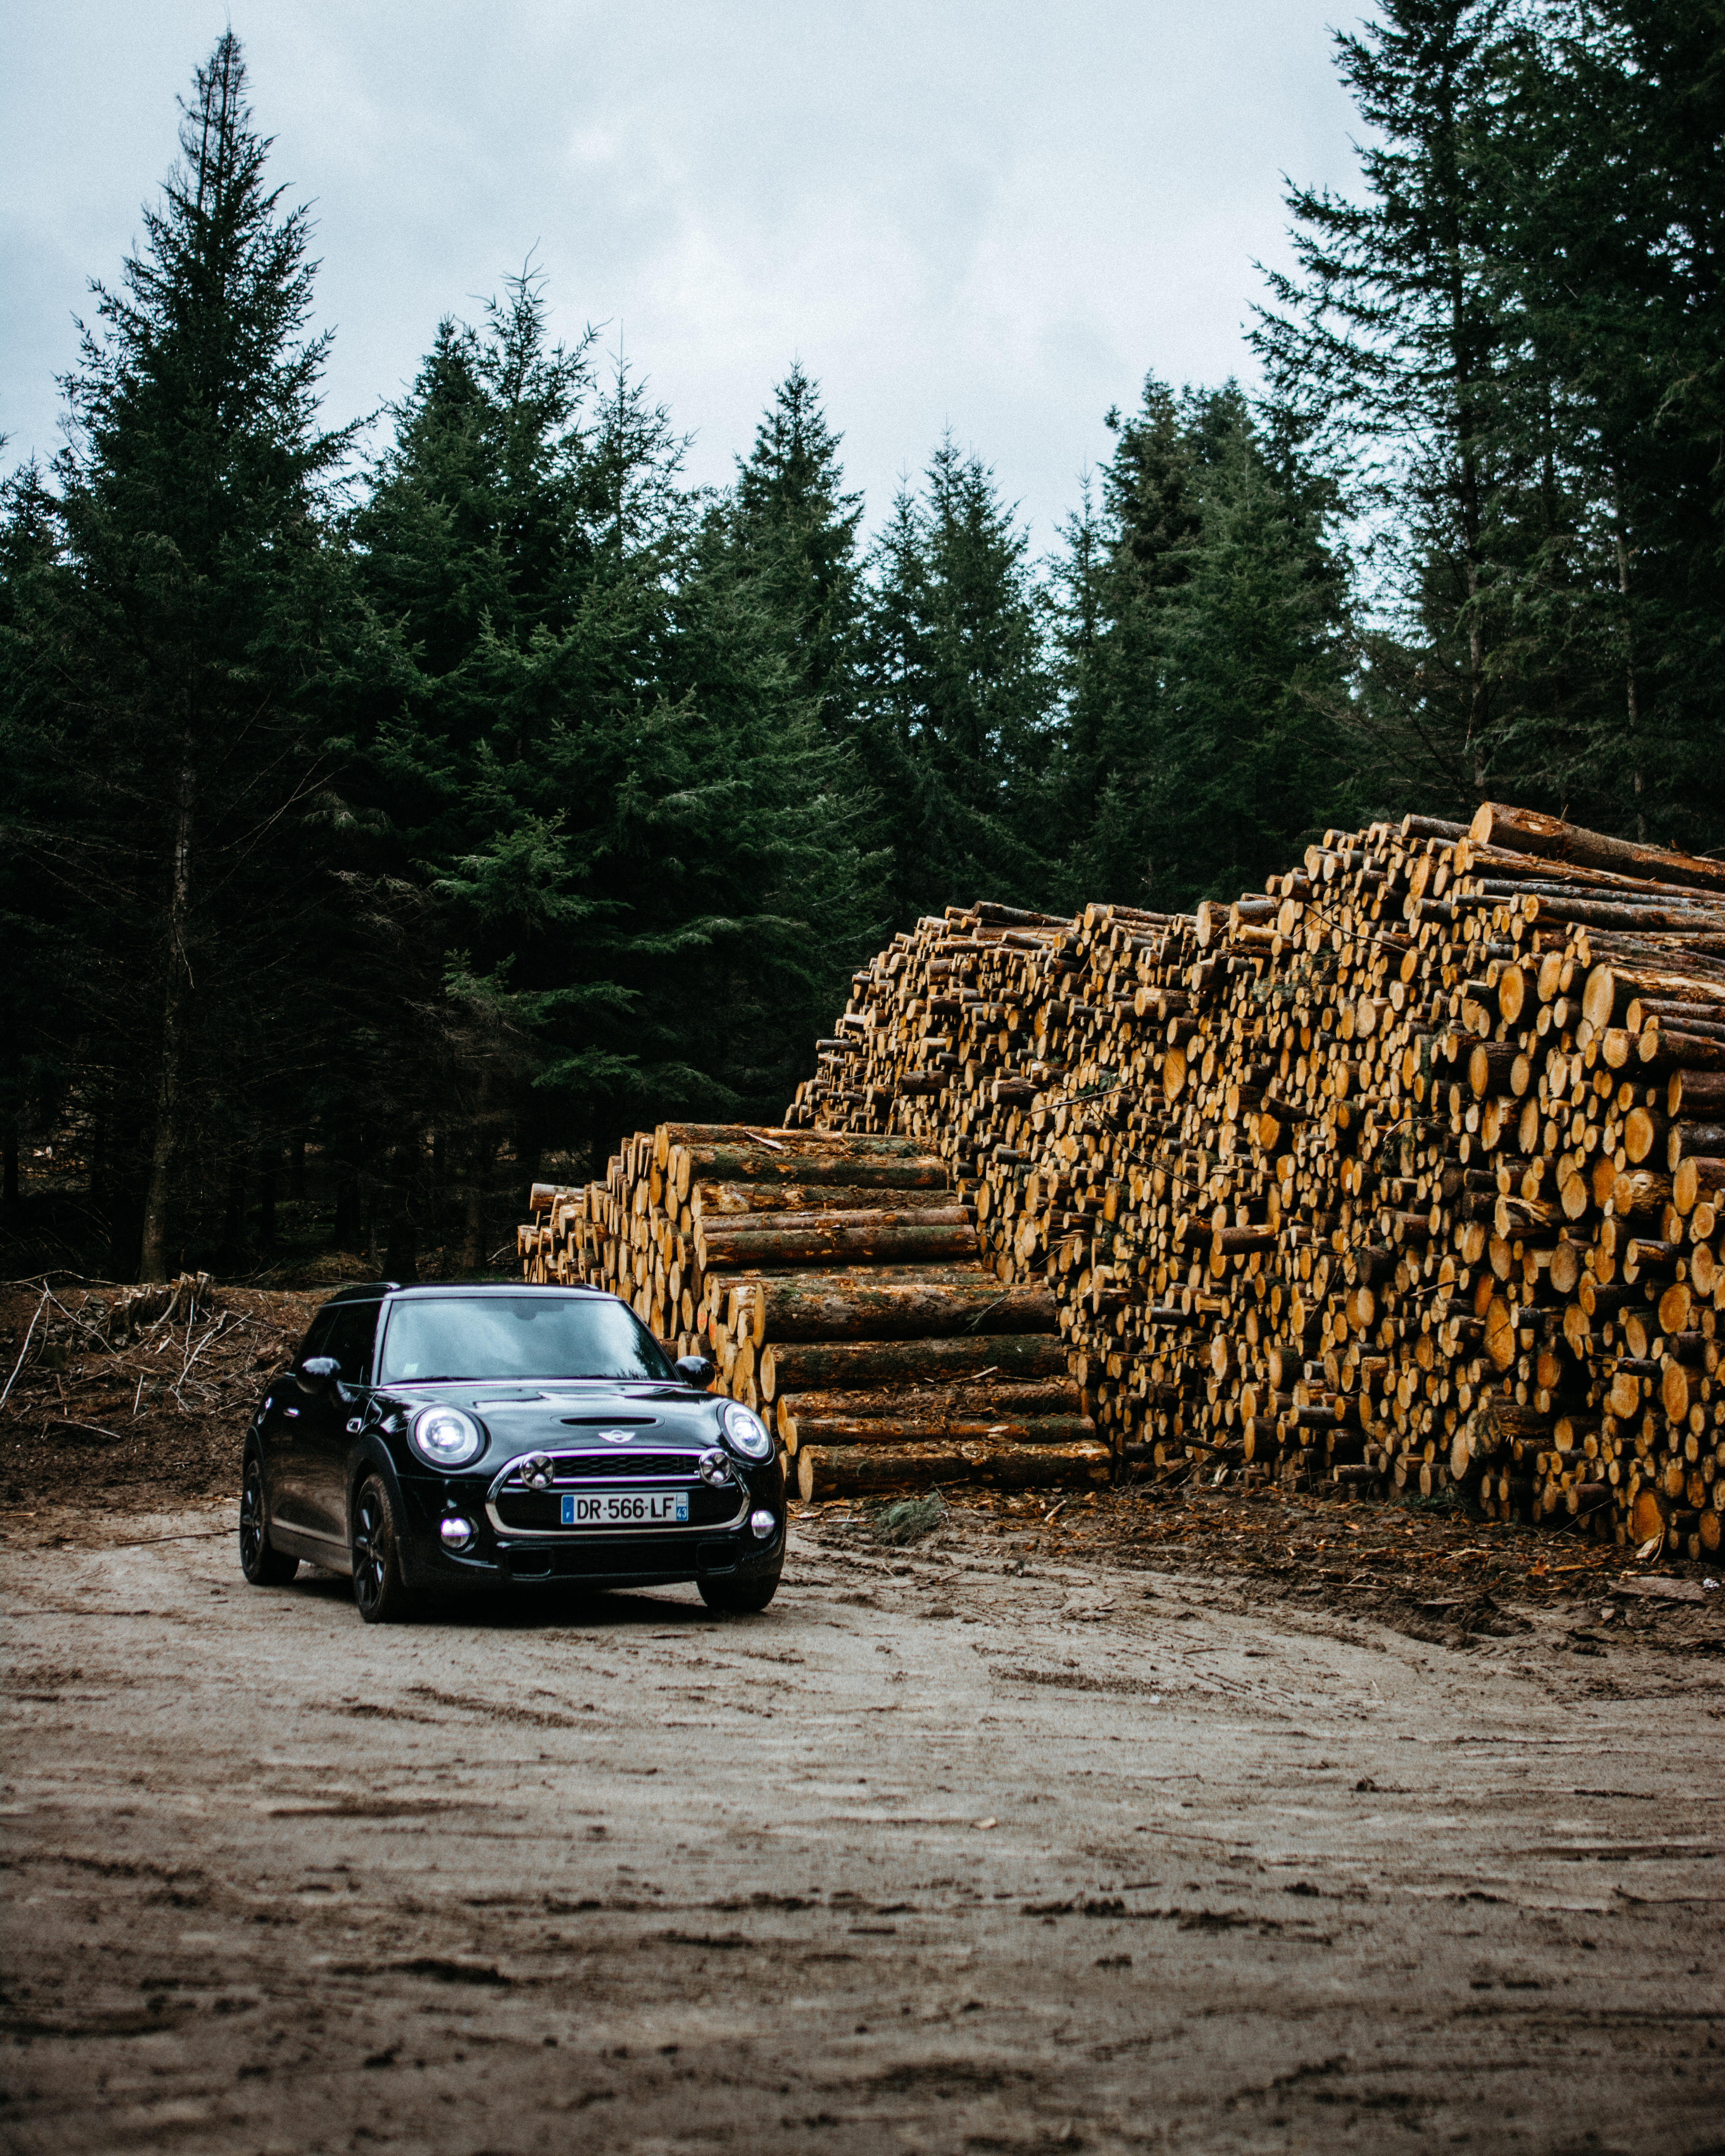 Photo Of Car Parked Near Pile Of Logs